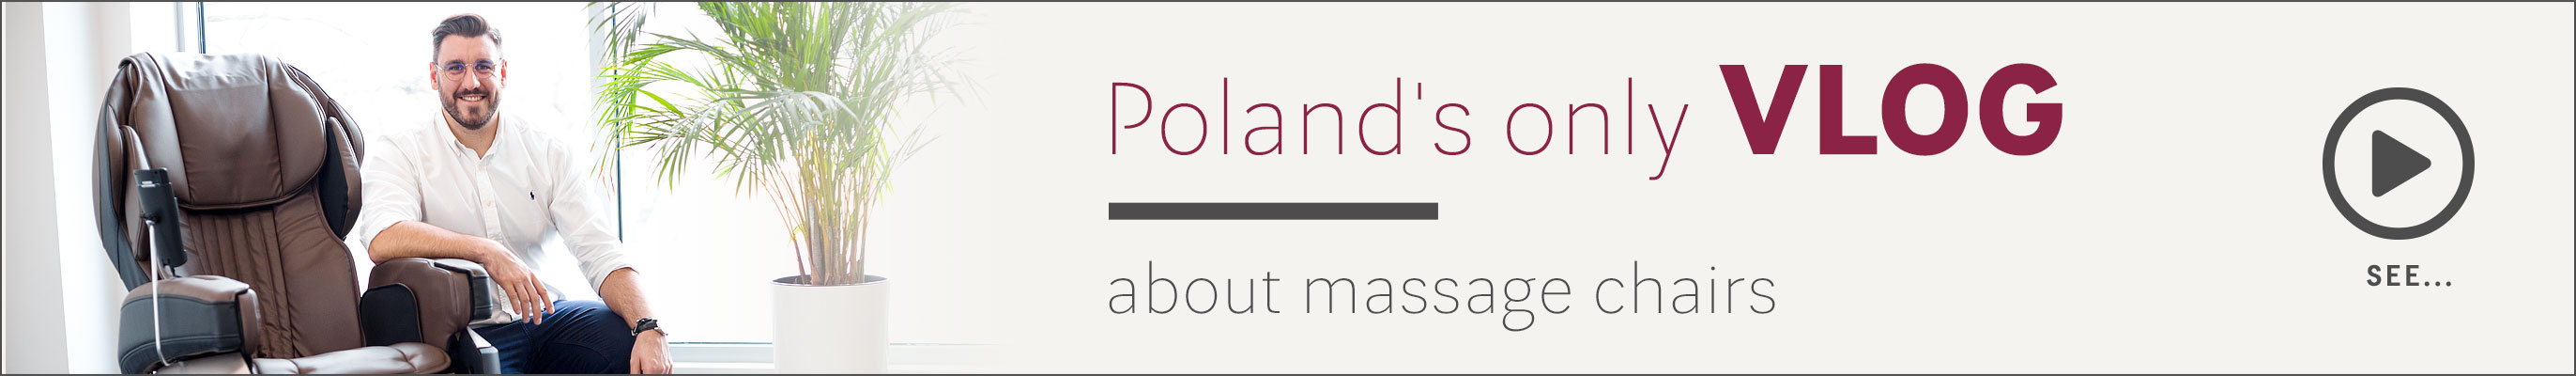 Poland's only vlog about massage chairs